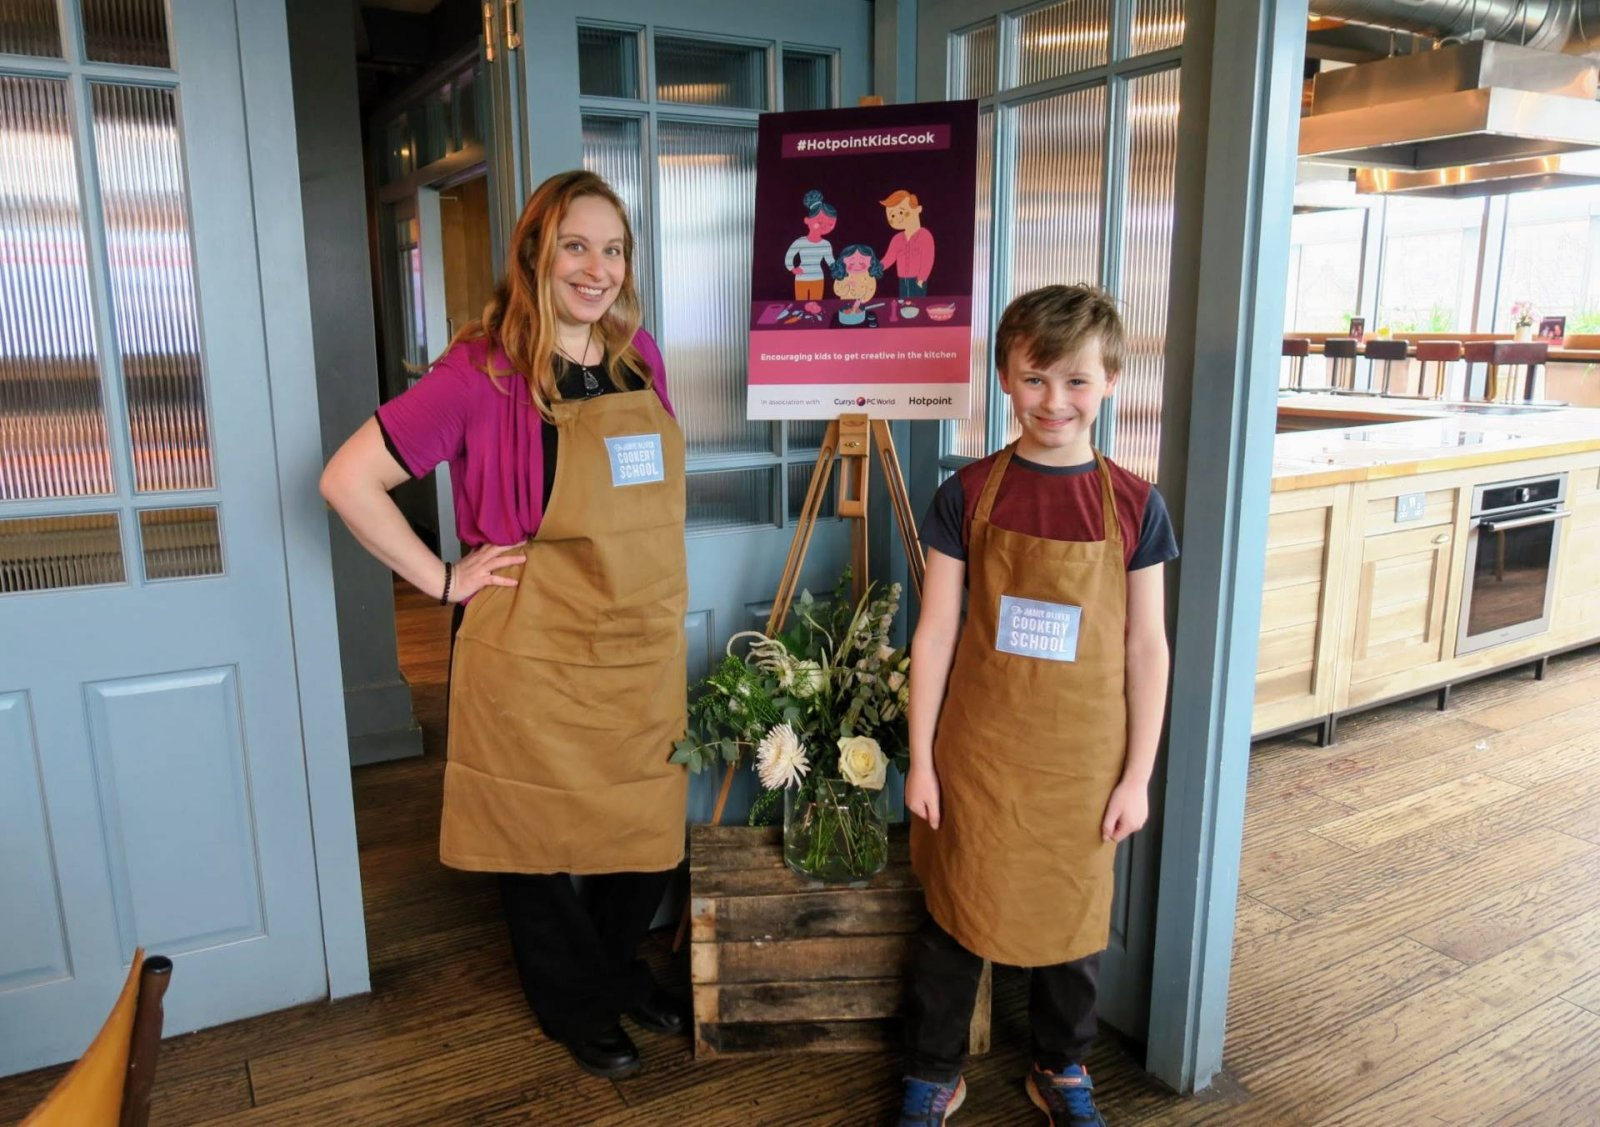 Win With The Hotpoint Healthy Recipe Challenge Plus Our Day at Jamie Oliver's Cookery School